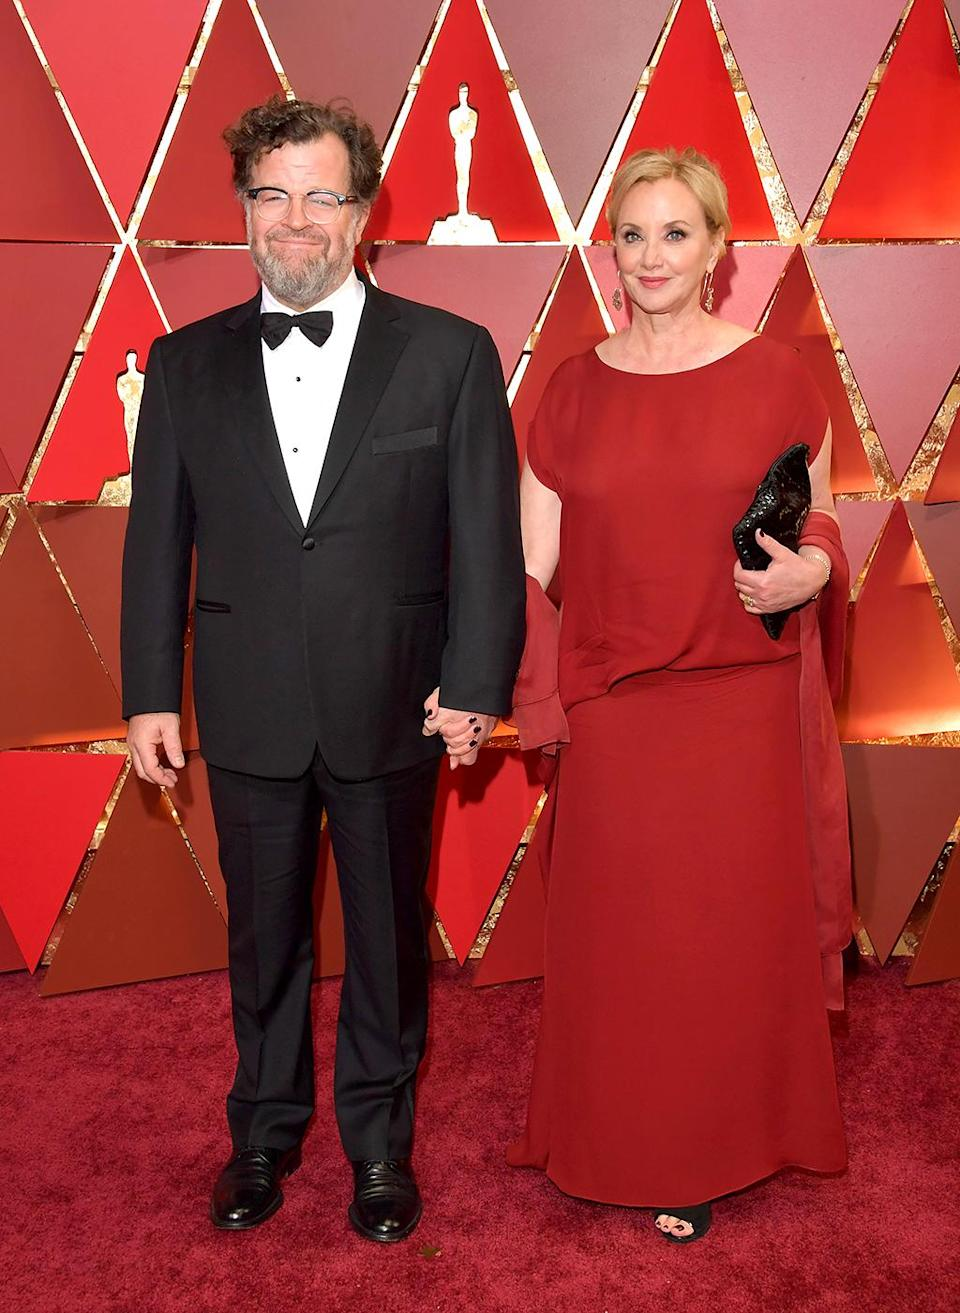 <p>Director Kenneth Lonergan and actor J. Smith-Cameron attend the 89th Annual Academy Awards at Hollywood & Highland Center on February 26, 2017 in Hollywood, California. (Photo by Lester Cohen/WireImage) </p>